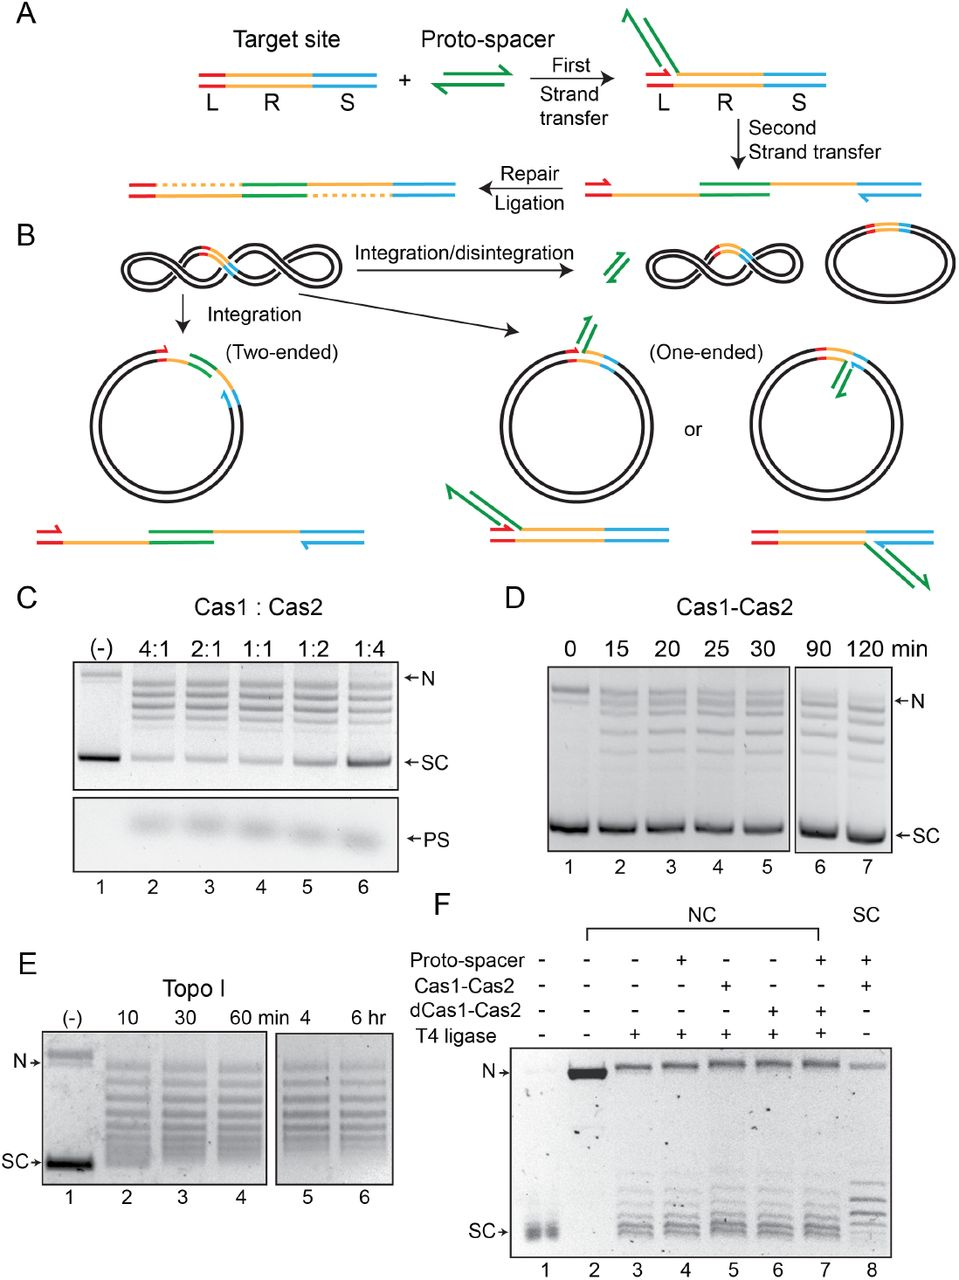 Cas1-Cas2 integrates and disintegrates proto-spacers at the CRISPR locus in a supercoiled plasmid. A . Illustration of protospacer (PS, green) integration into a minimal CRISPR locus comprised of the leader (L, red), repeat (R, yellow) and spacer (S, blue). The reaction follows the cut- and-paste DNA transposition mechanism with a duplication of the repeat sequence. The 3'-hydroxyls that perform nucleophilic attacks at the L-R junction (top strand) and the R-S junction (bottom strand) are indicated by the split arrowheads. B . In vitro reactions were performed with a supercoiled acceptor plasmid containing the minimal CRISPR locus (L = 11 bp; R = 36 bp; S = 27 bp). Each strand of the proto-spacer was 26 nt long, with four single stranded 3'-proximal nucleotides. The products of two-ended (complete) and one-ended (partial) proto-spacer integration and of protospacer integration-disintegration are diagrammed. Plasmid supercoiling will be reduced if the free DNA end undergoes rotation between integration and disintegration. C . The target plasmid and the proto-spacer were reacted with Cas1-Cas2 mixtures in the indicated molar ratios. After 2 hr incubation, reactions were analyzed by agarose gel electrophoresis and ethidium bromide staining. A split view of the top and bottom portions of the gel is presented to show the plasmid and proto-spacer bands. D . Reactions were similar to those shown in C, and utilized a Cas1 to Cas2 molar ratio of 2:1. E . The substrate plasmid used for the reactions in C and D was treated with a sub-optimal amount of E. coli topoisomerase I to follow the pattern of DNA relaxation over time. F . The T4 ligase reactions (lanes 3-7) were performed on the plasmid containing the L-R-S target site nicked with Nb BtsI (lane 2). The Cas1-Cas2 integration-disintegration reaction (lane 8) utilized the same plasmid in its supercoiled form (lane 1). Reactions were analyzed by gel electrophoresis in the presence of chloroquine (0.4 μg /ml). The DNA bands 